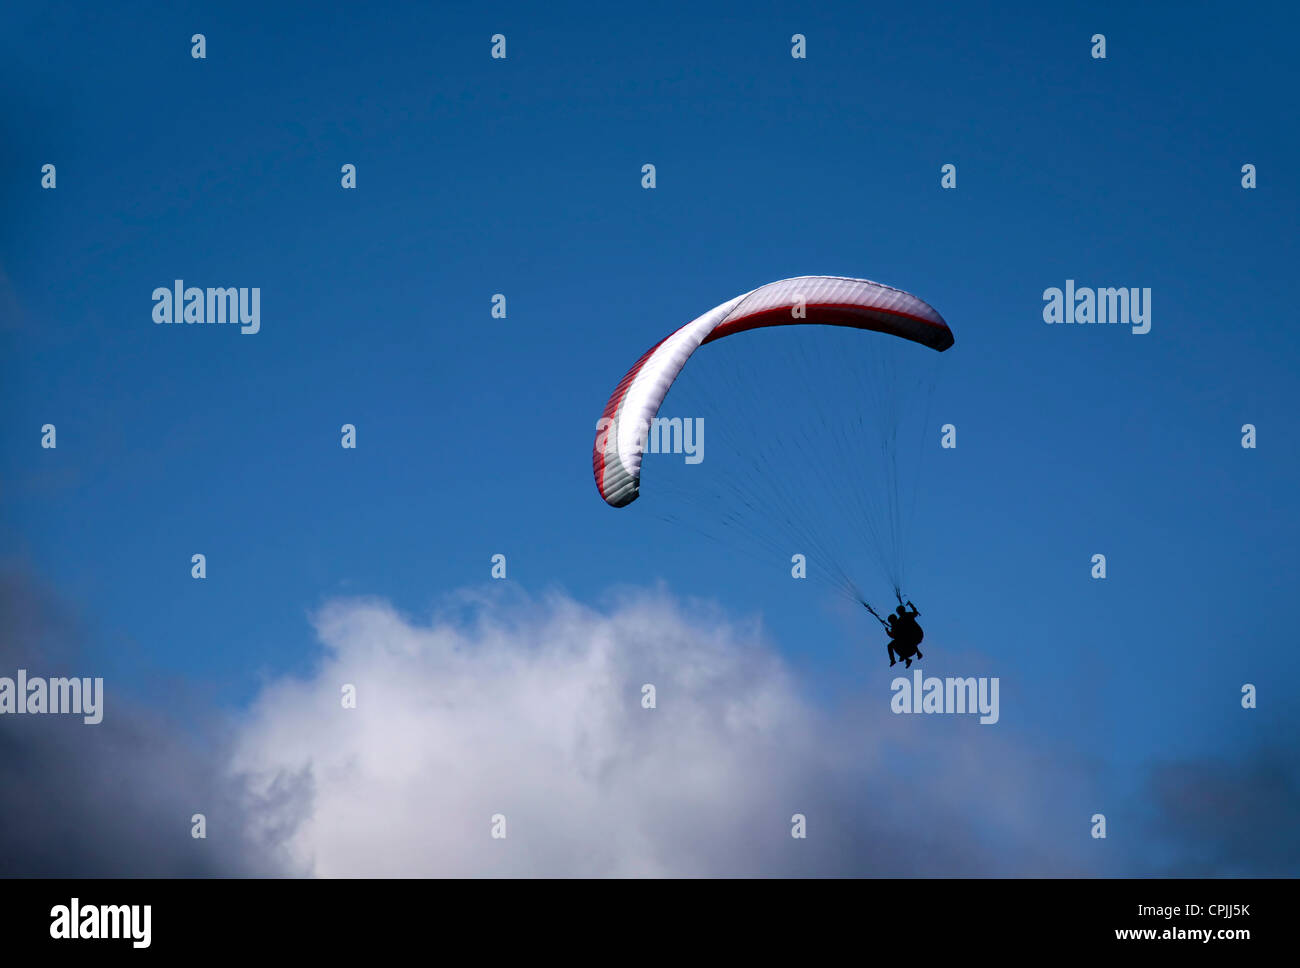 Paraglider in the clouds at Bobs Peak, Queentown, Otago, South island, New Zealand Stock Photo